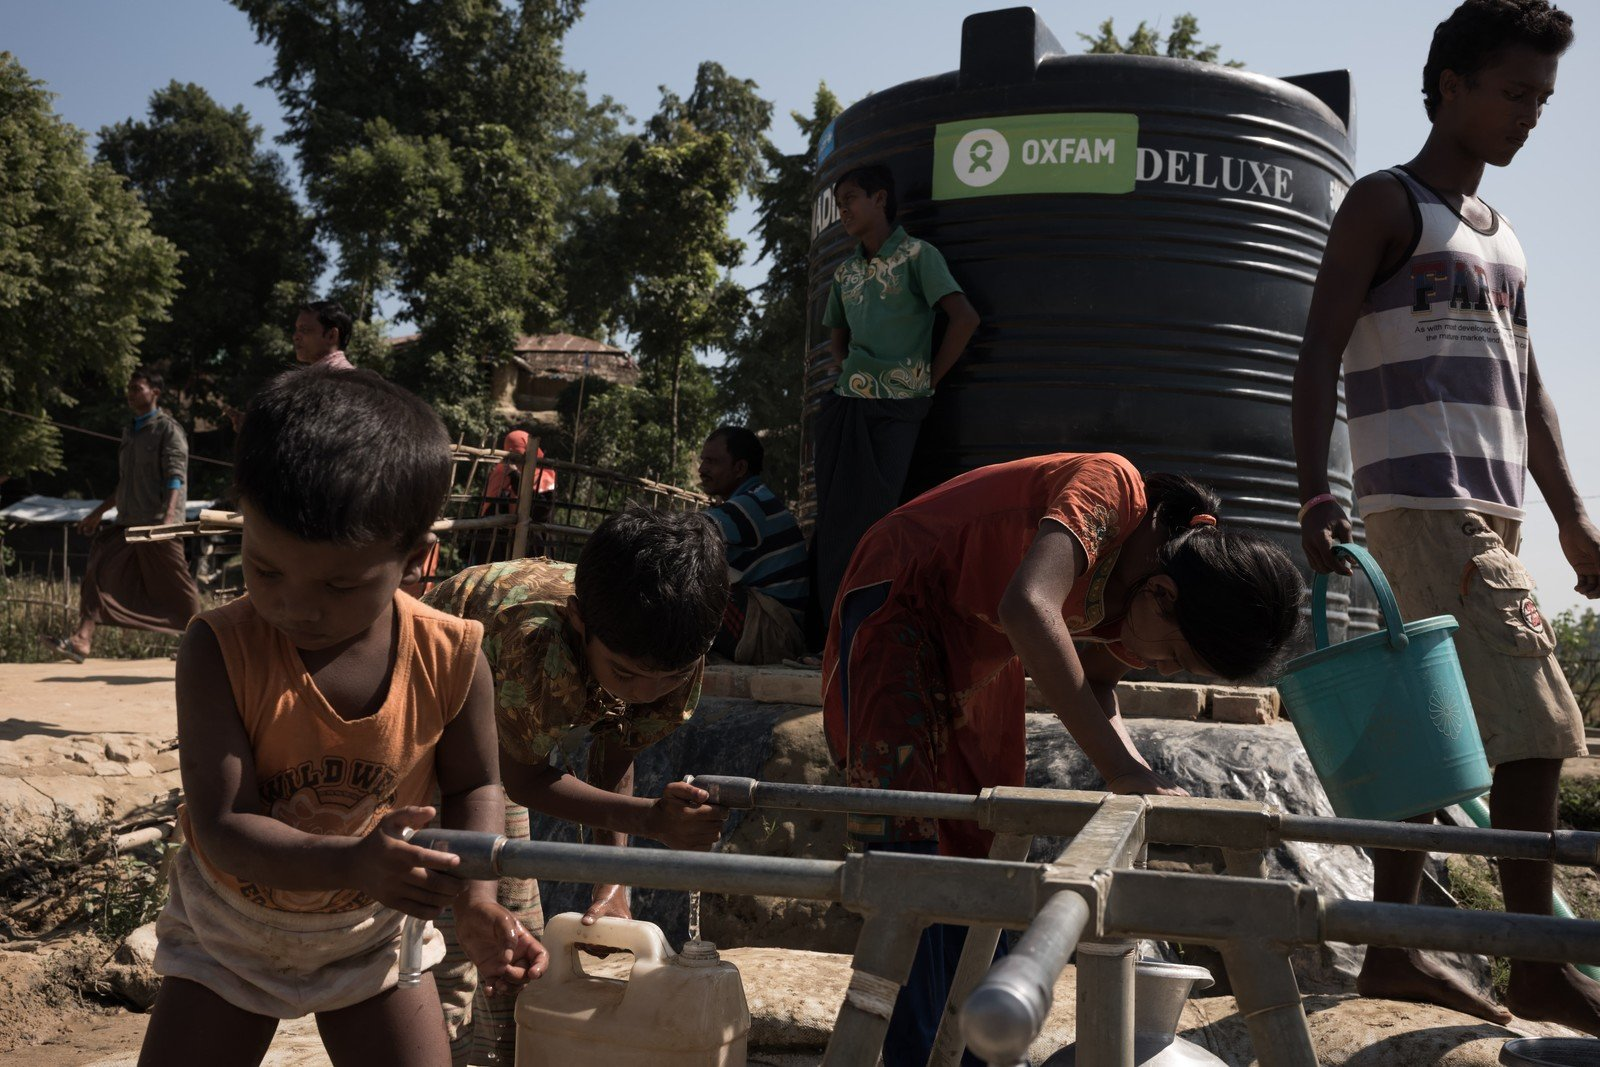 At Unchiprang refugee camp, Oxfam is installing water tanks and pipes to supply 45,000 litres of water to 15,000 people every day. (Photo: Ko Chung Ming/Oxfam)